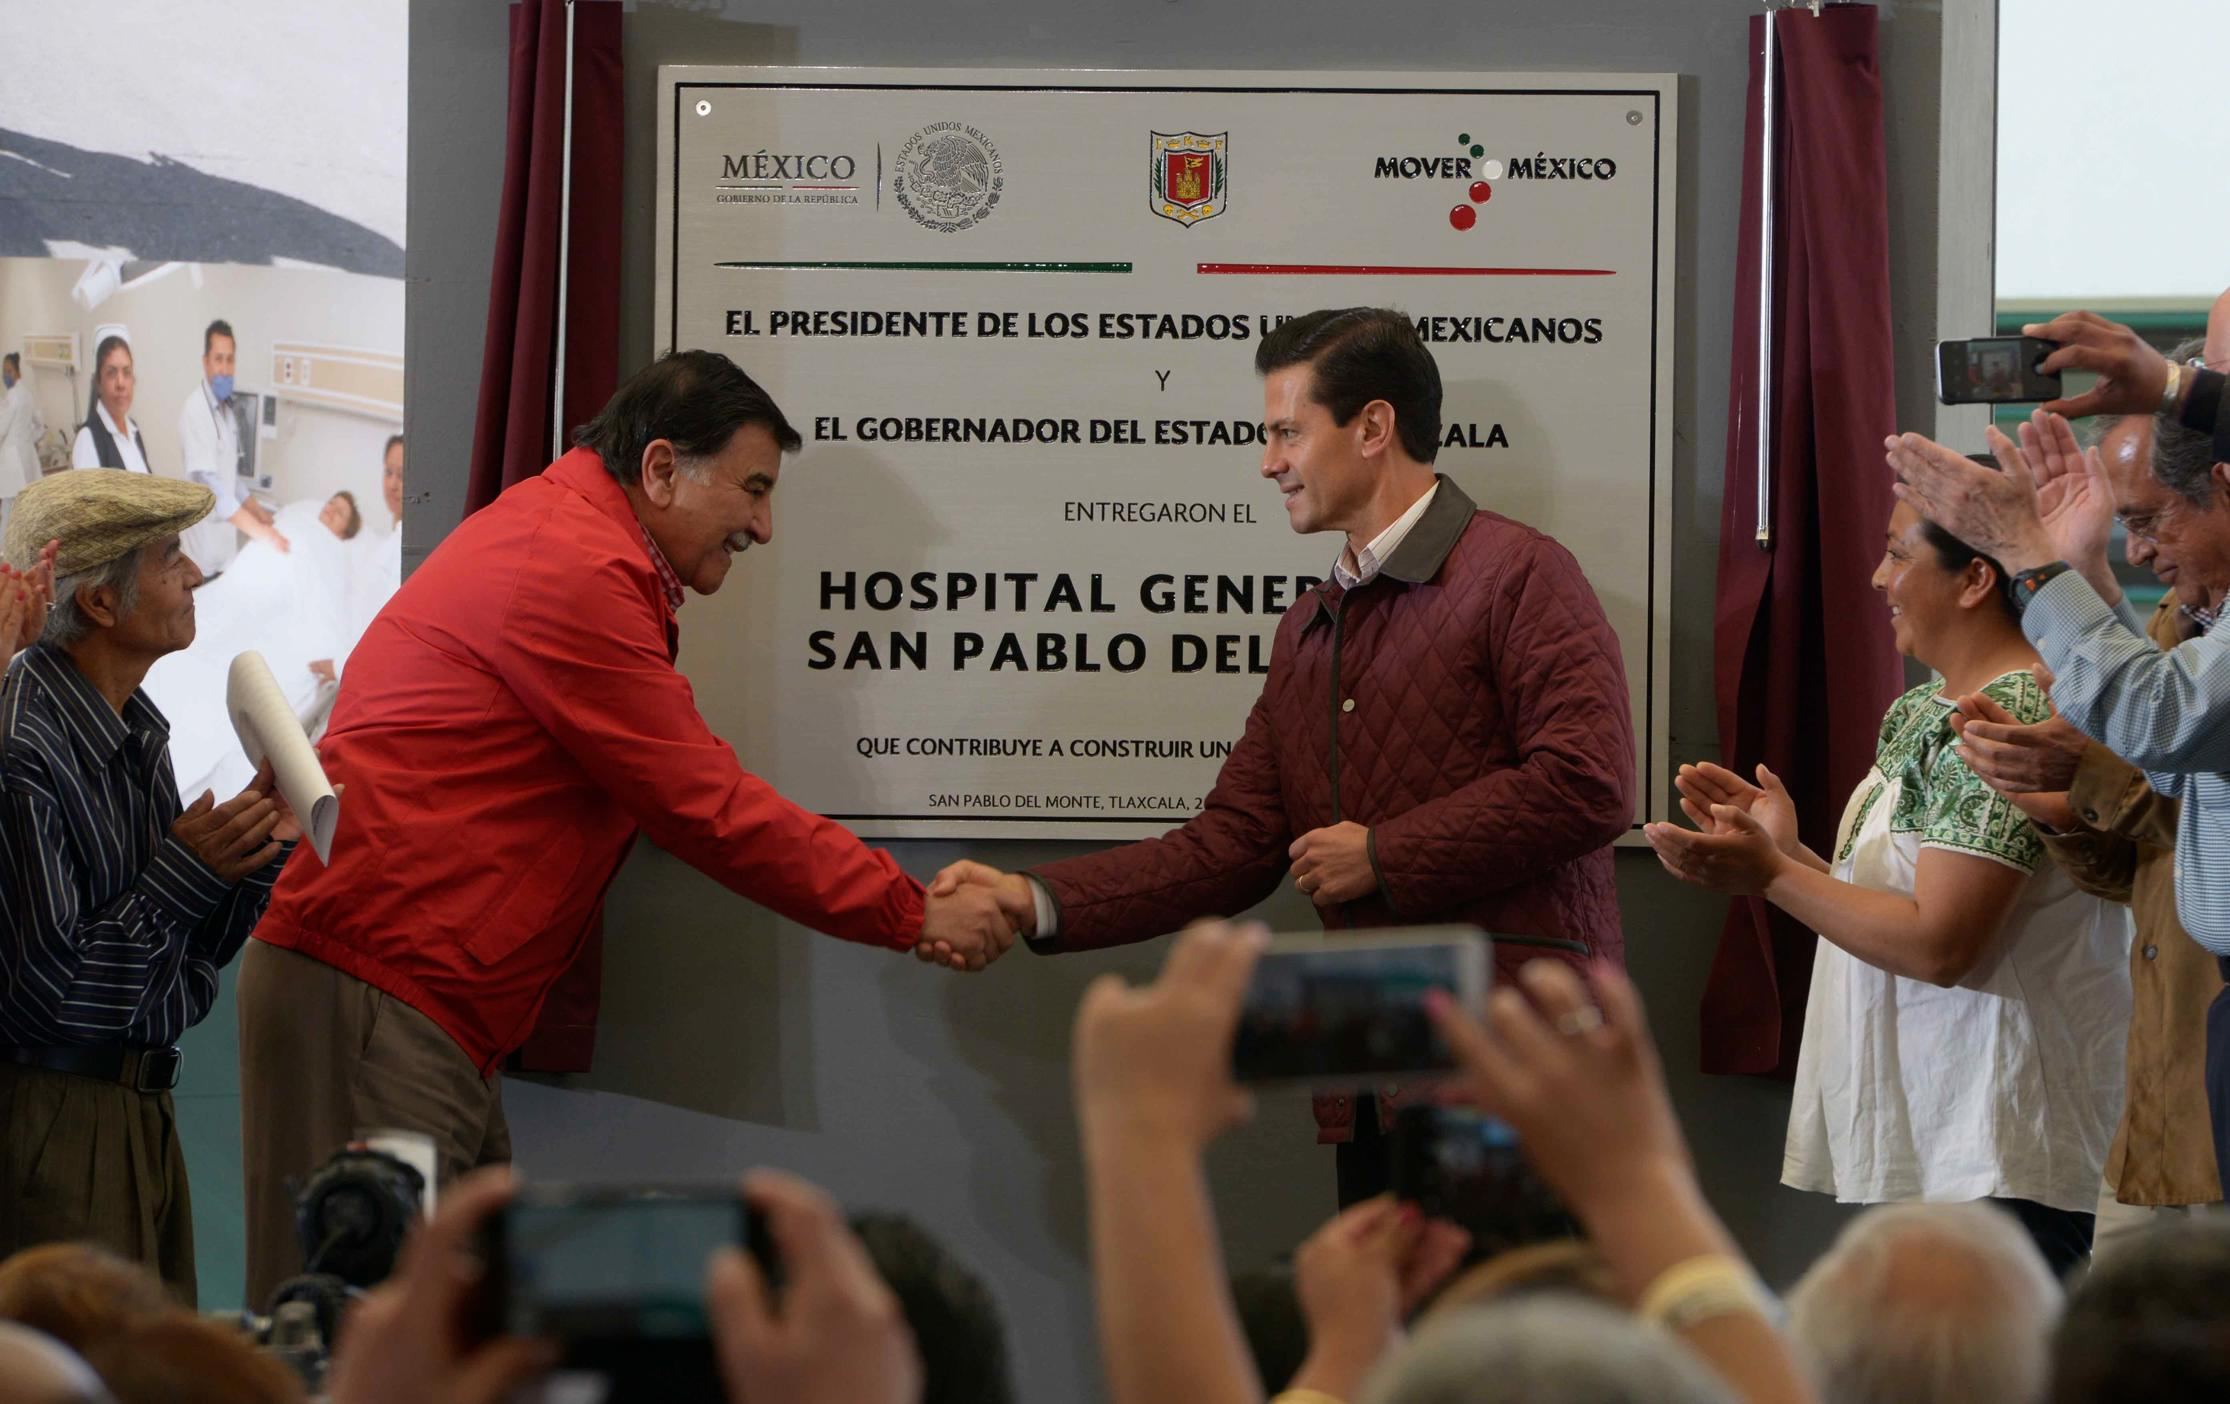 The president inaugurated the San Pablo del Monte General Hospital.